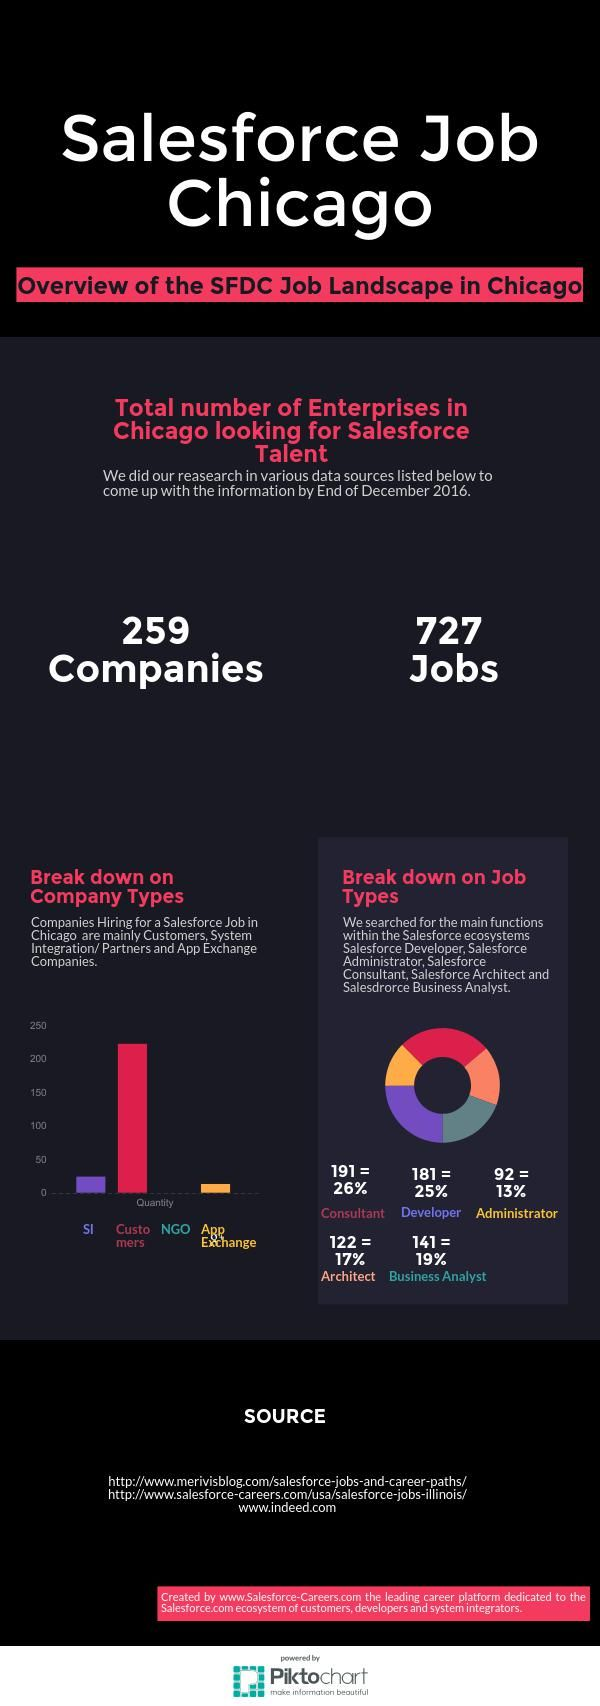 Salesforce Job Chicago Landscape Piktochart Infographic